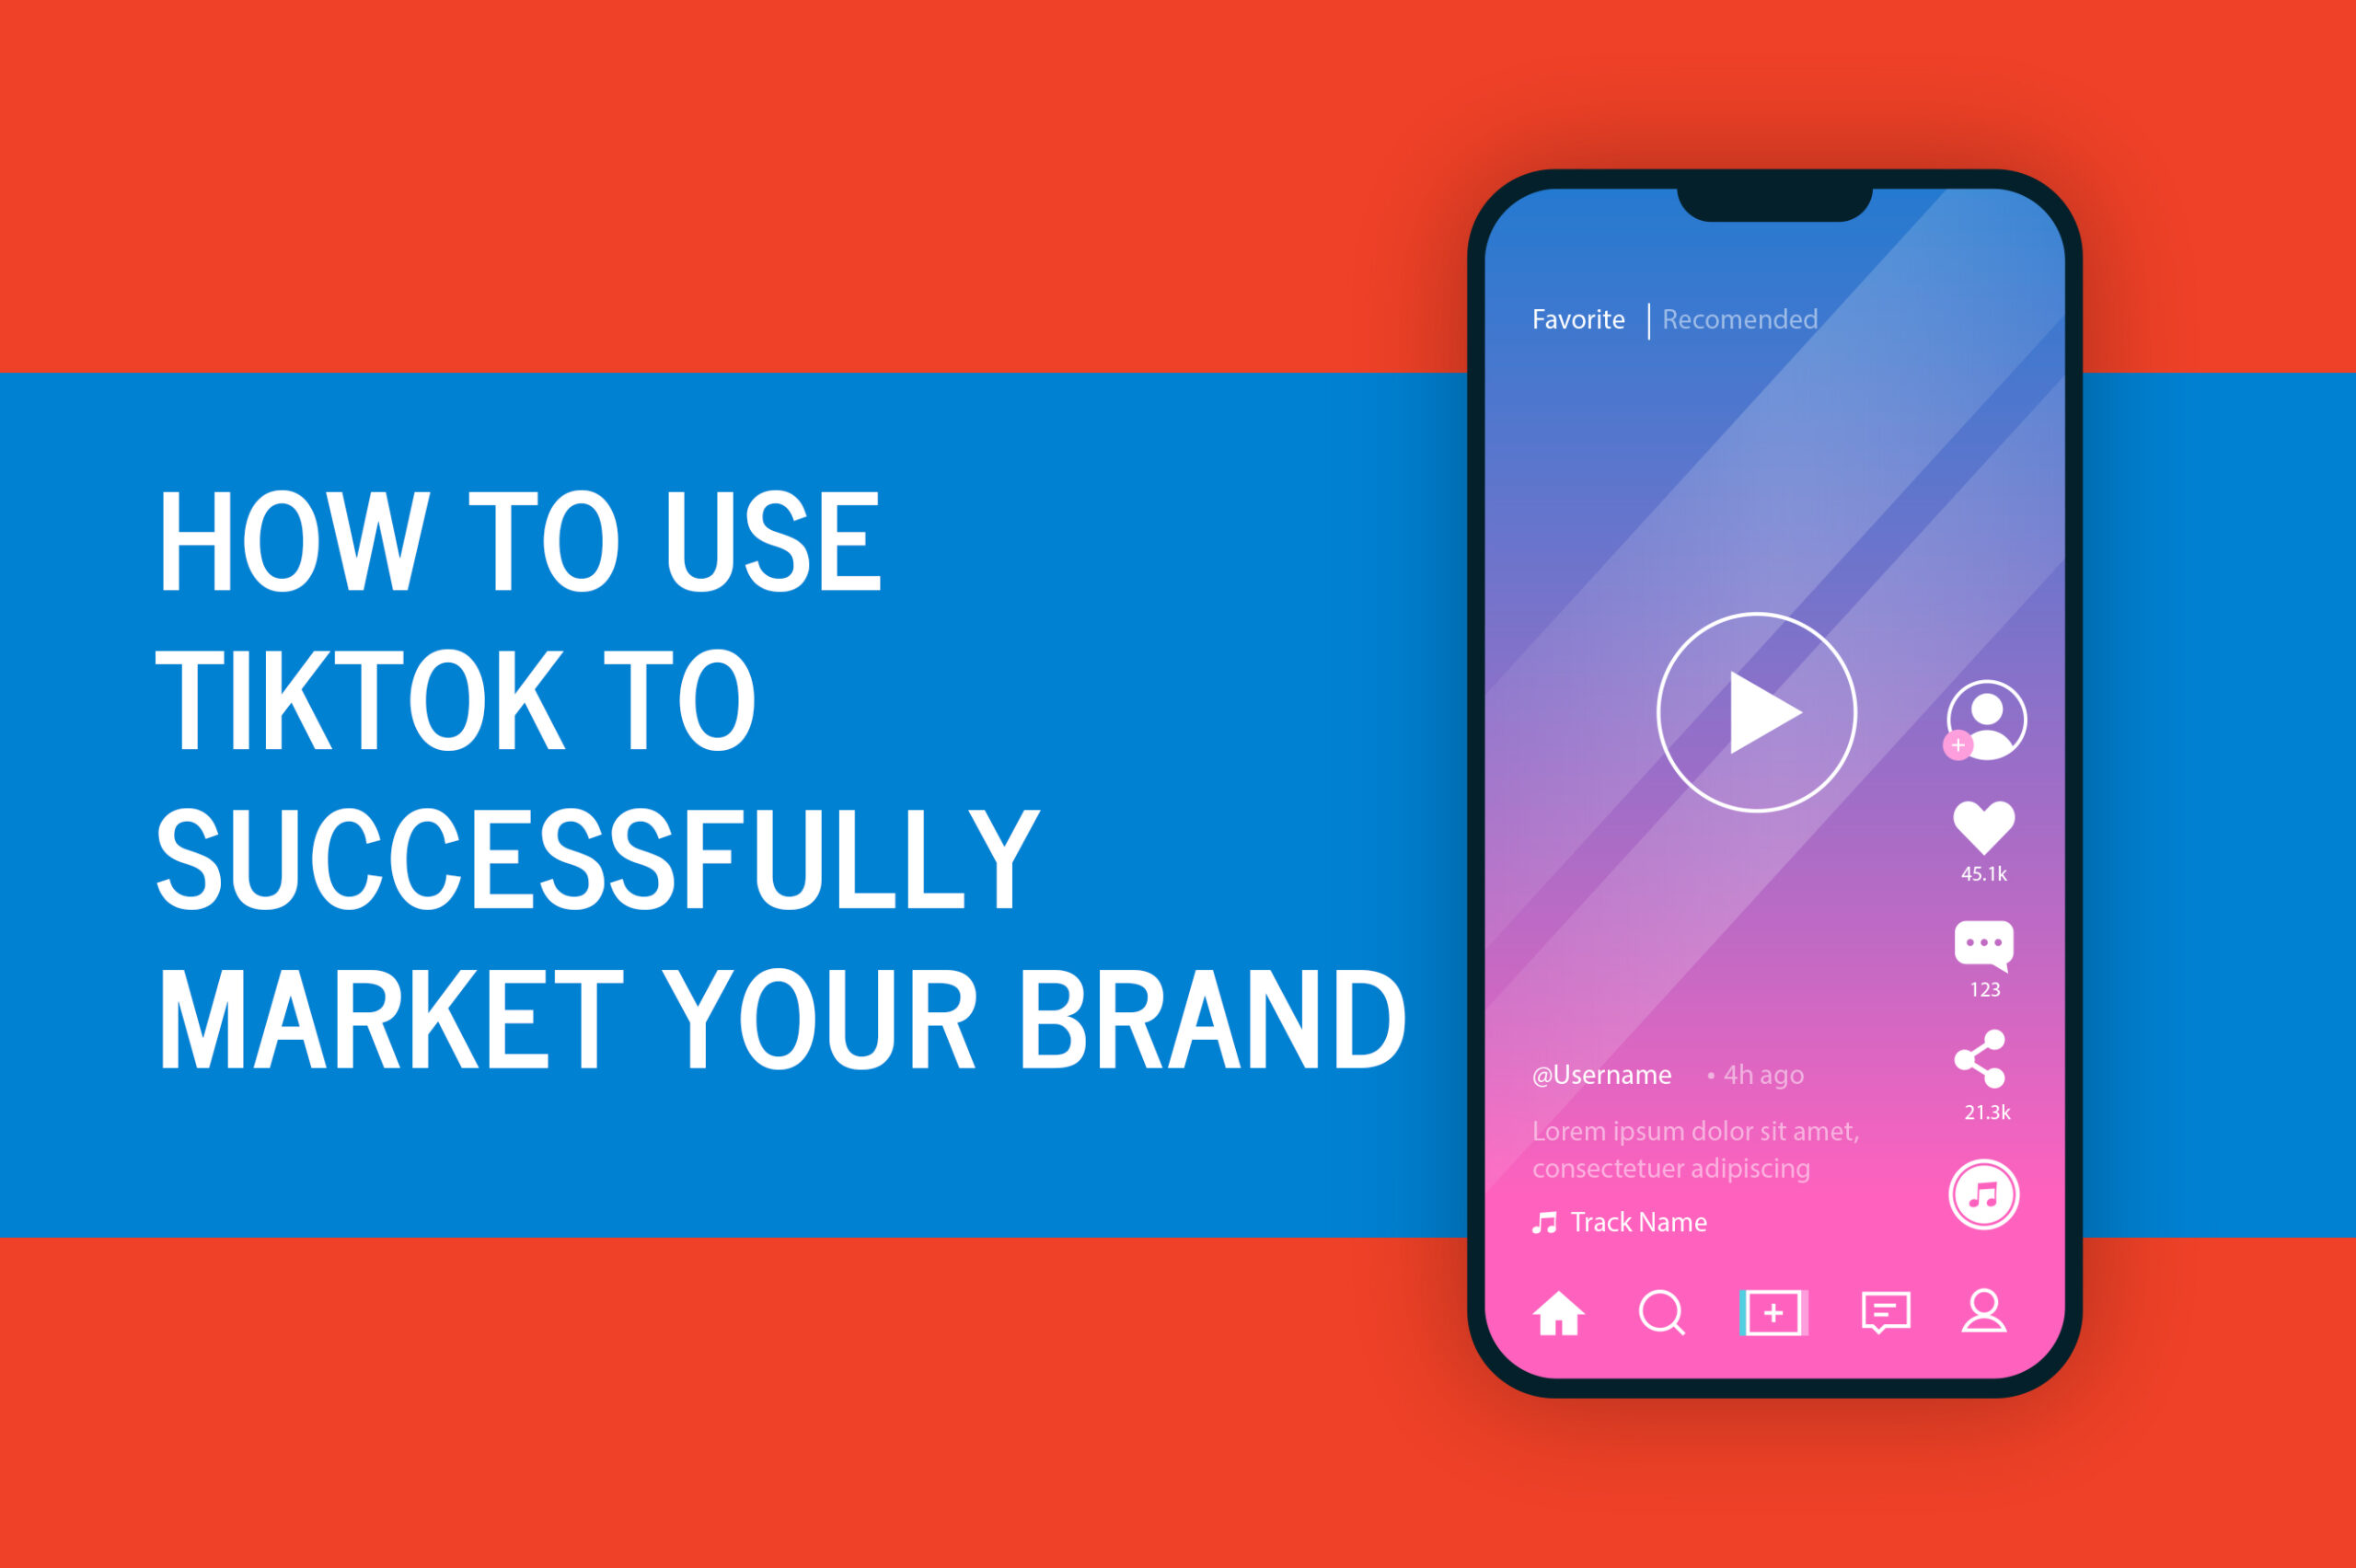 How to Use TikTok to Successfully Market Your Brand